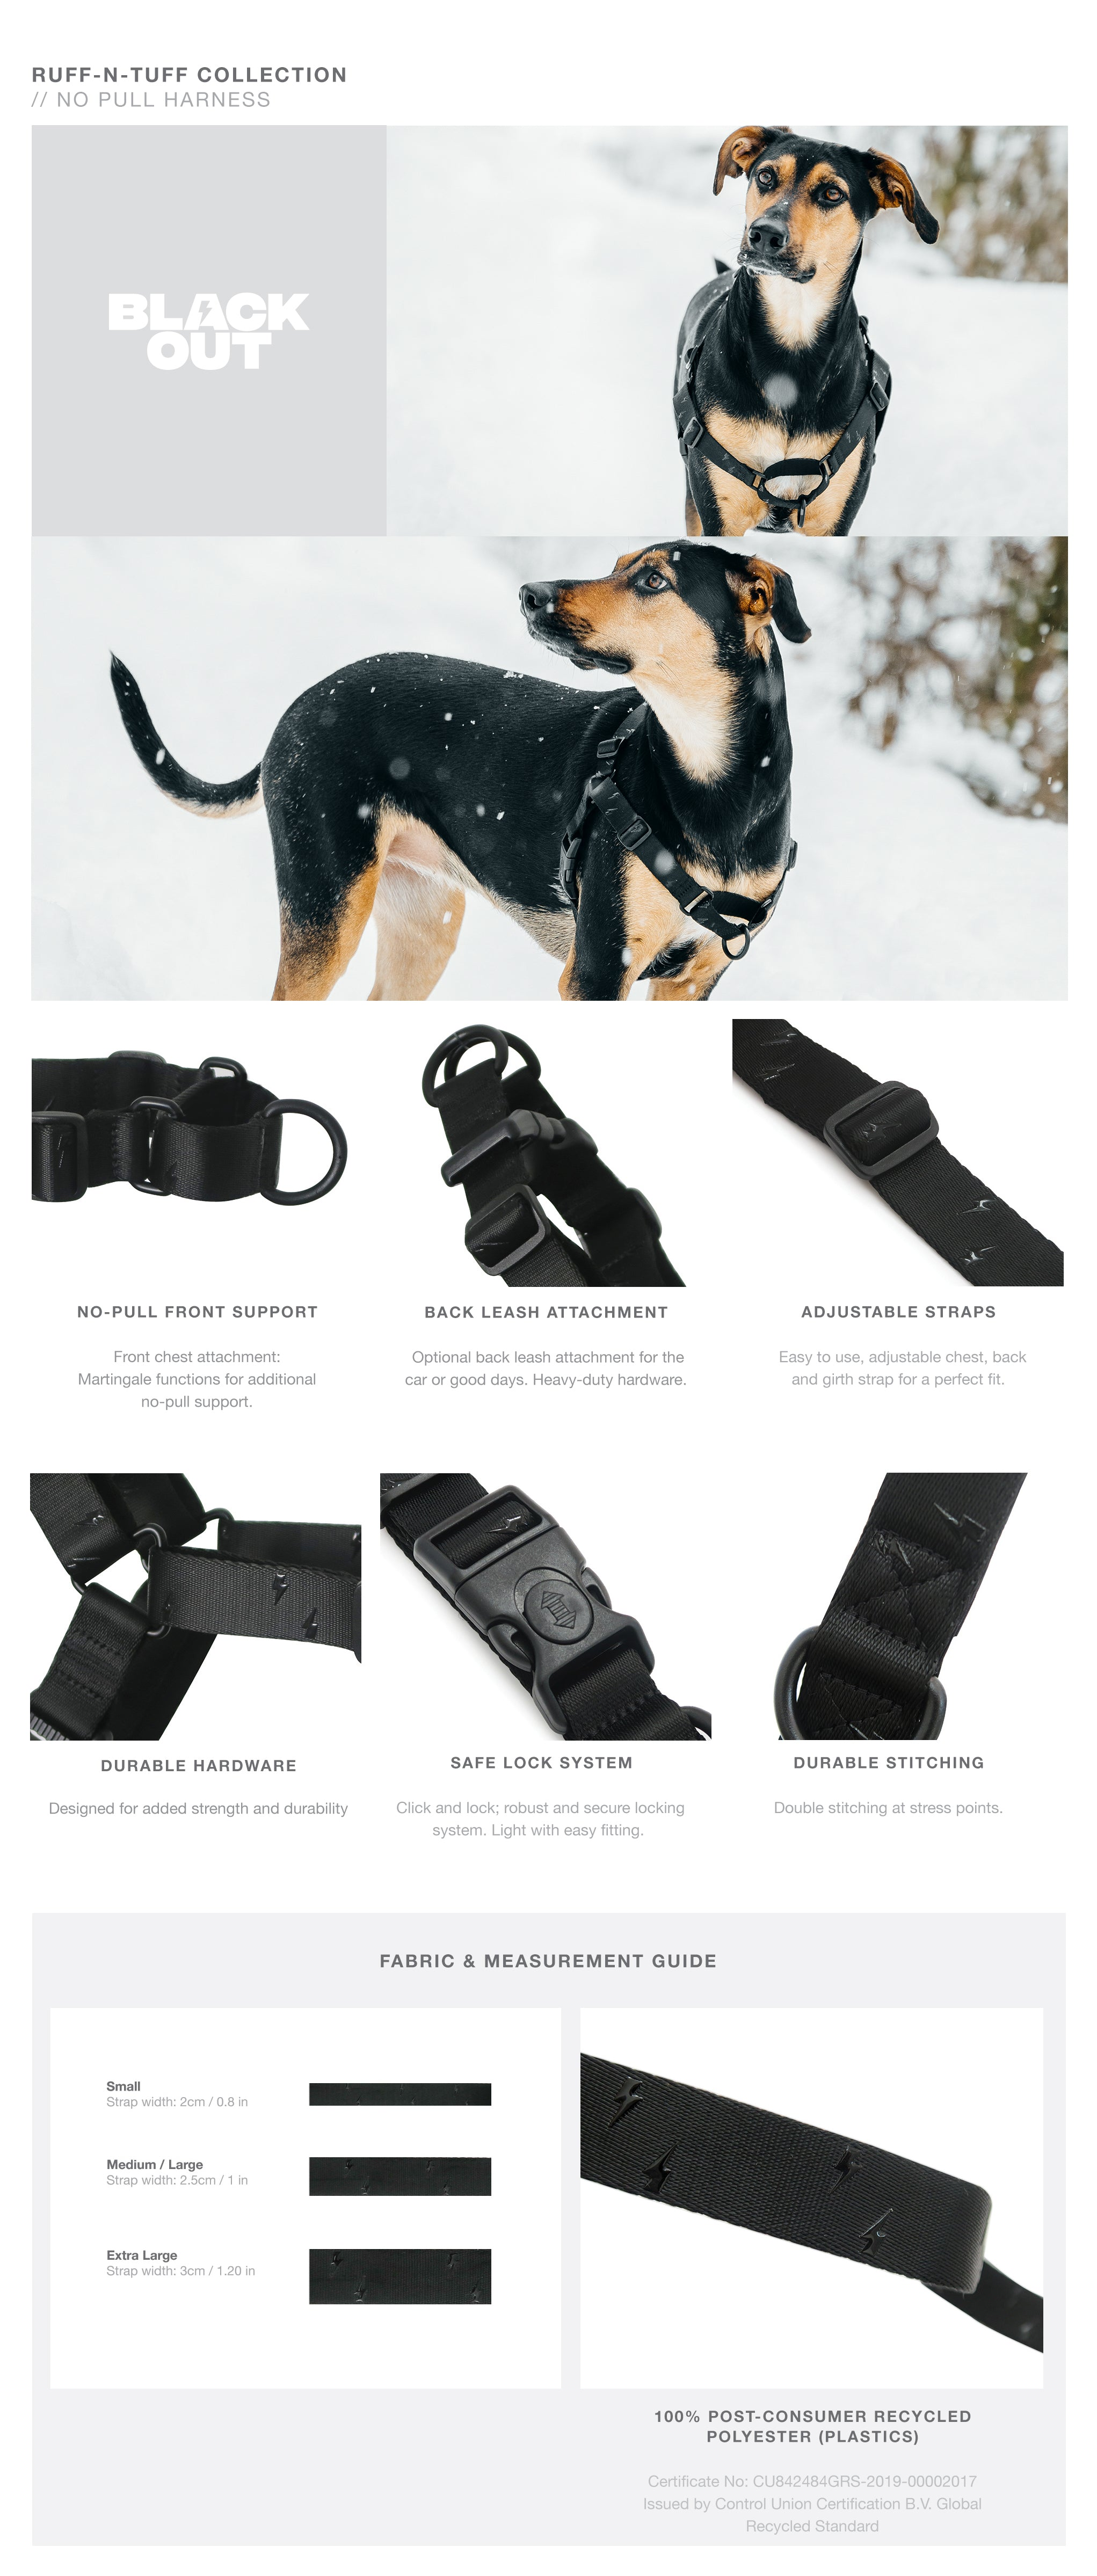 Blackout RNT No-Pull Training Harness with Padded Buddy